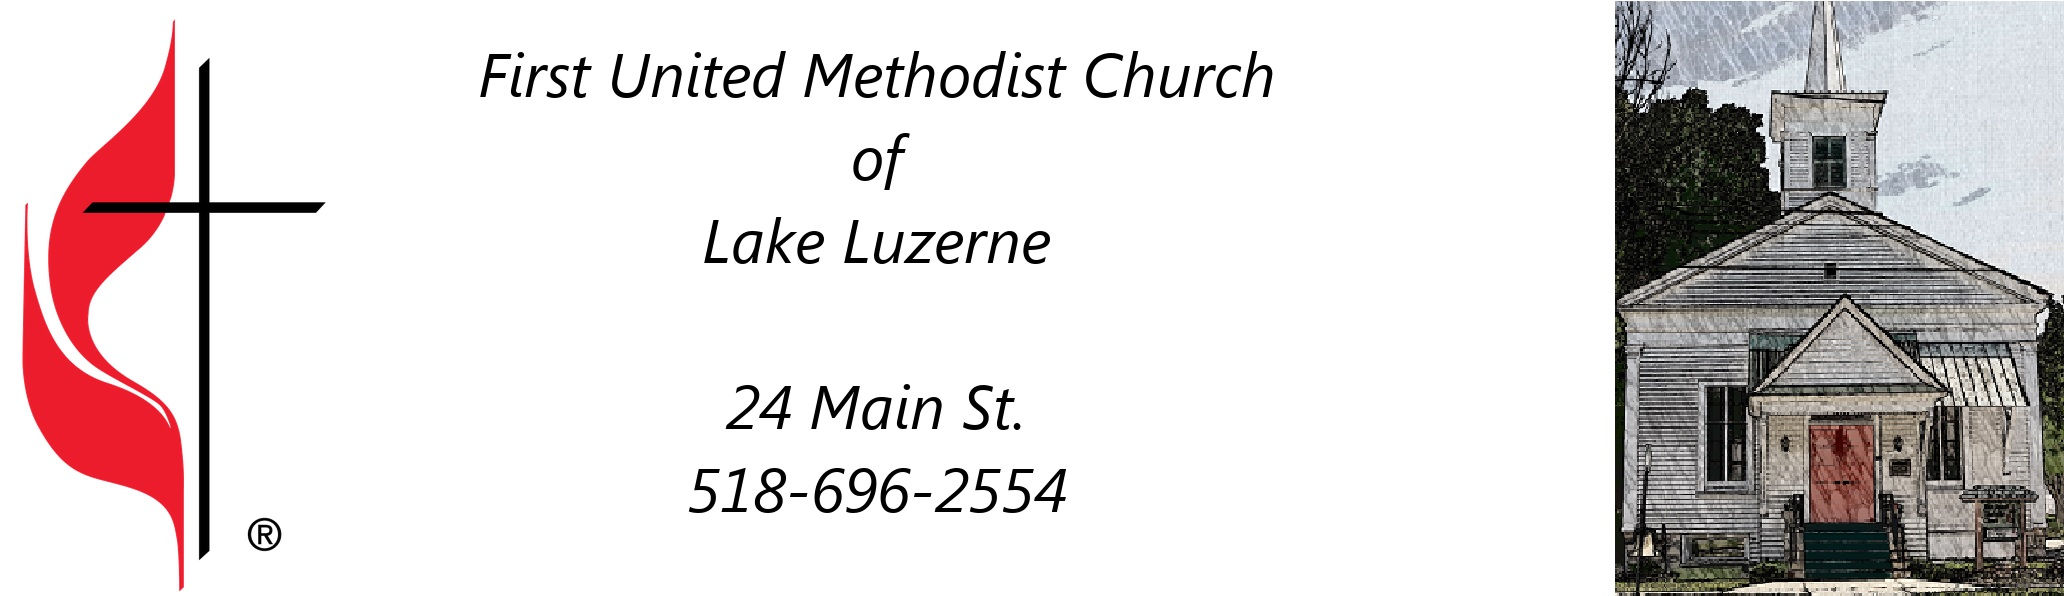 The First United Methodist Church of Lake Luzerne